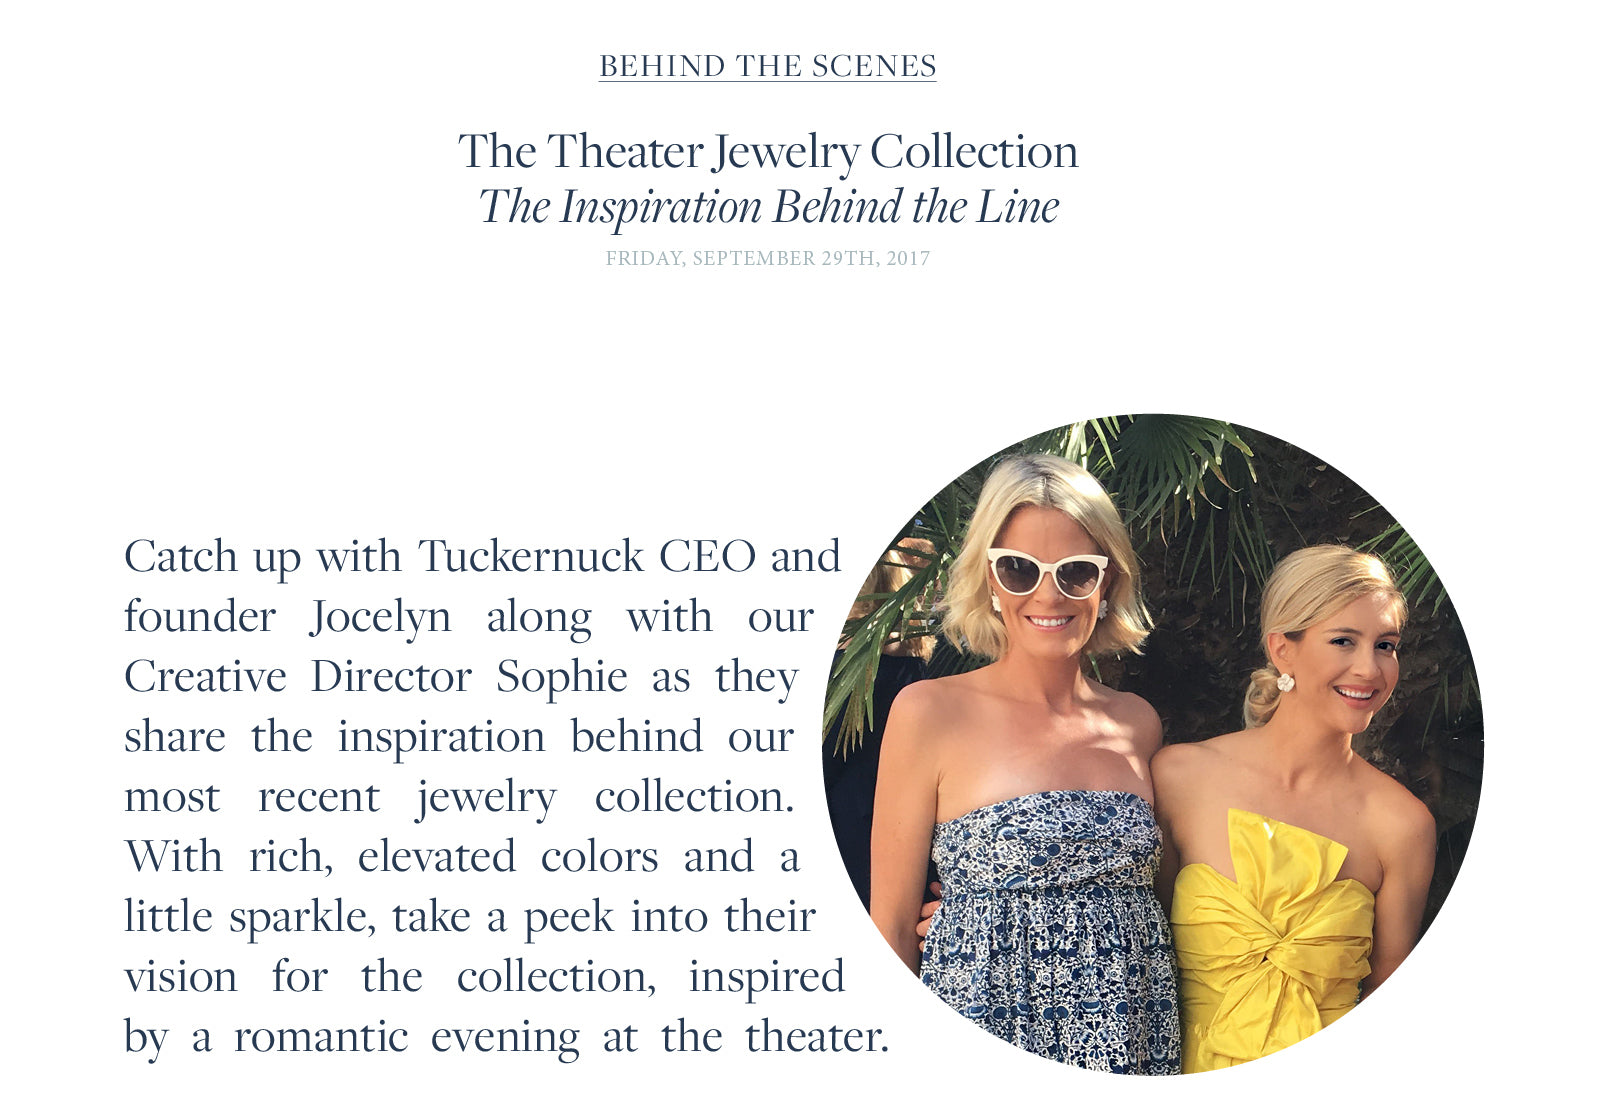 Catch up with Tuckernuck CEO and founder Jocelyn along with our Creative Director Sophie as they share the inspiration behind our most recent jewelry collection. With rich, elevated colors and a little sparkle, take a peek into their vision for the collection, inspired by a romantic evening at the theater.